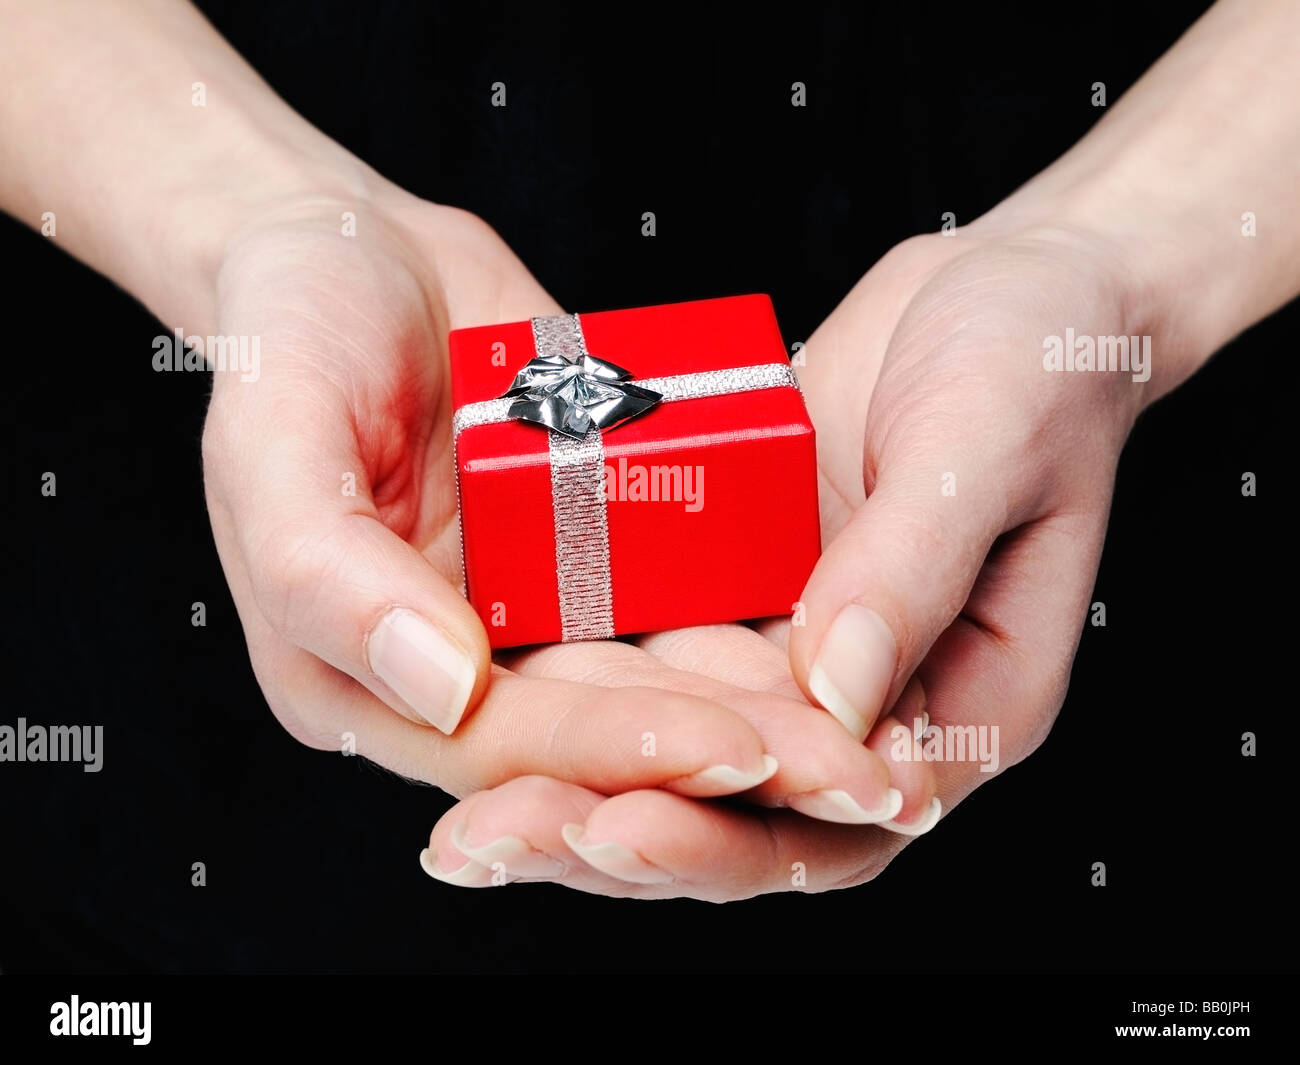 Hands Holding a Red Gift Box - Stock Image